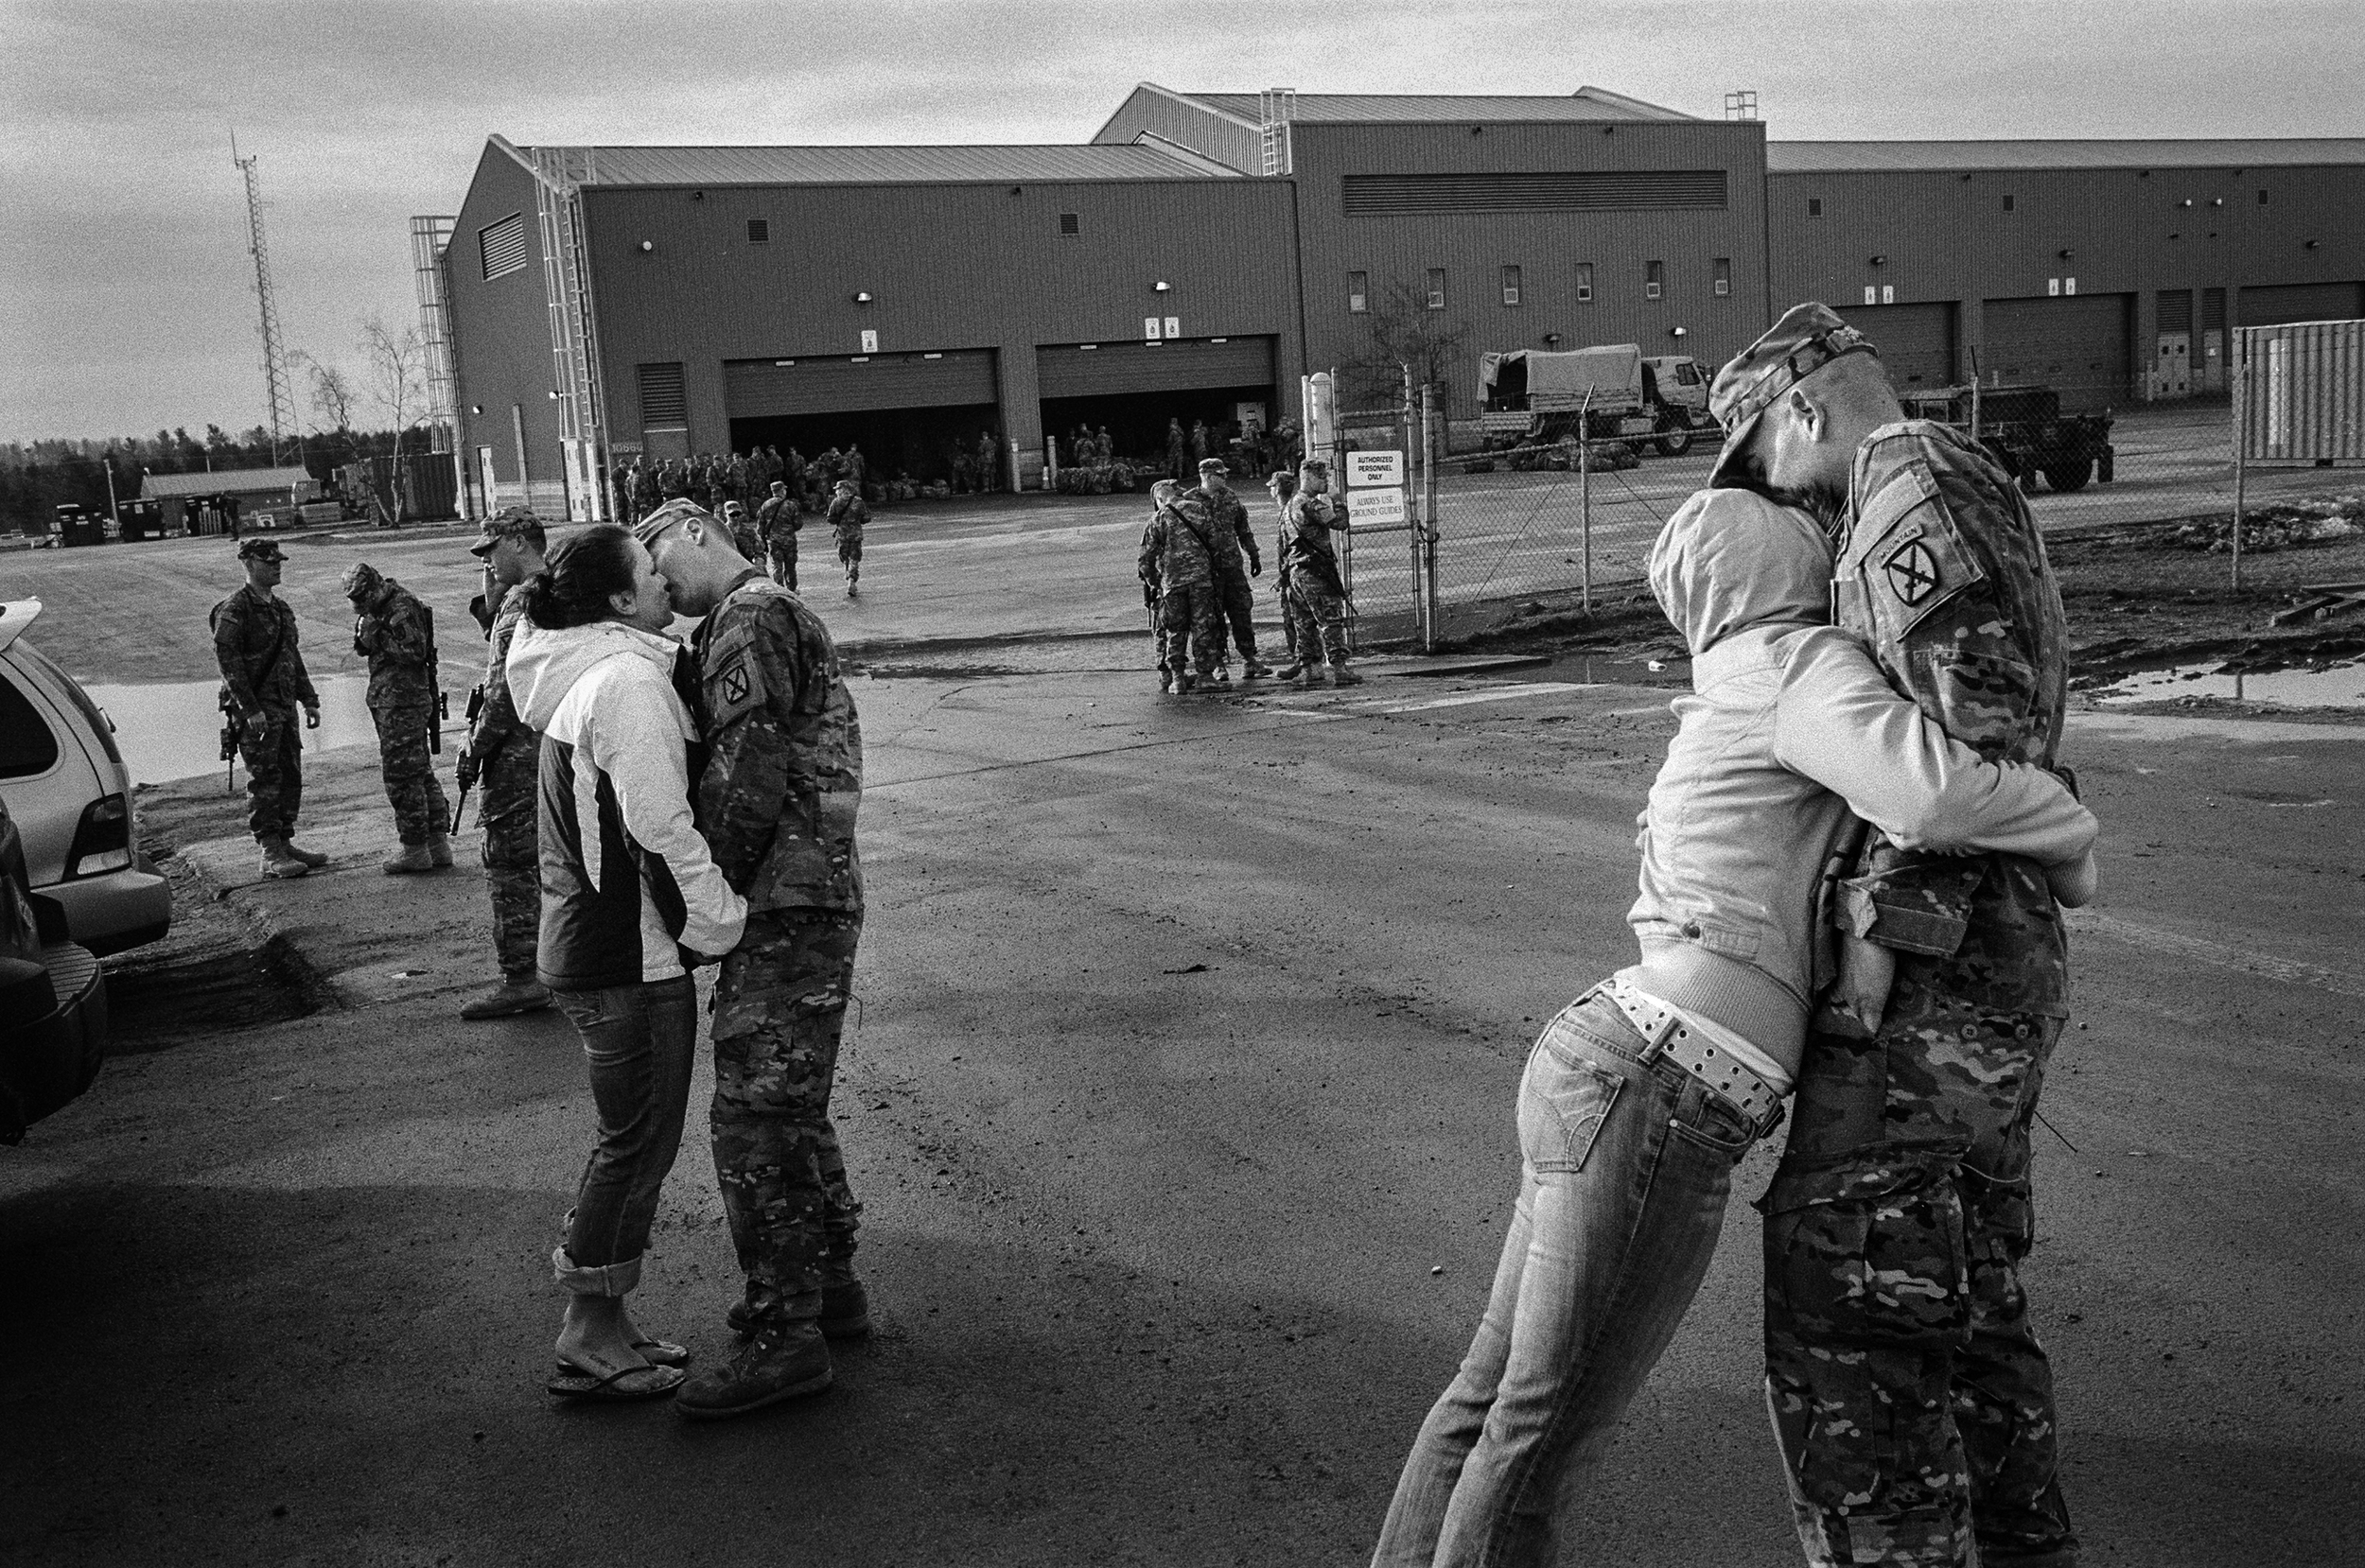 Soldiers say goodbye to their wives before deploying to Afghanistan at Fort Drum, New York, 2011.